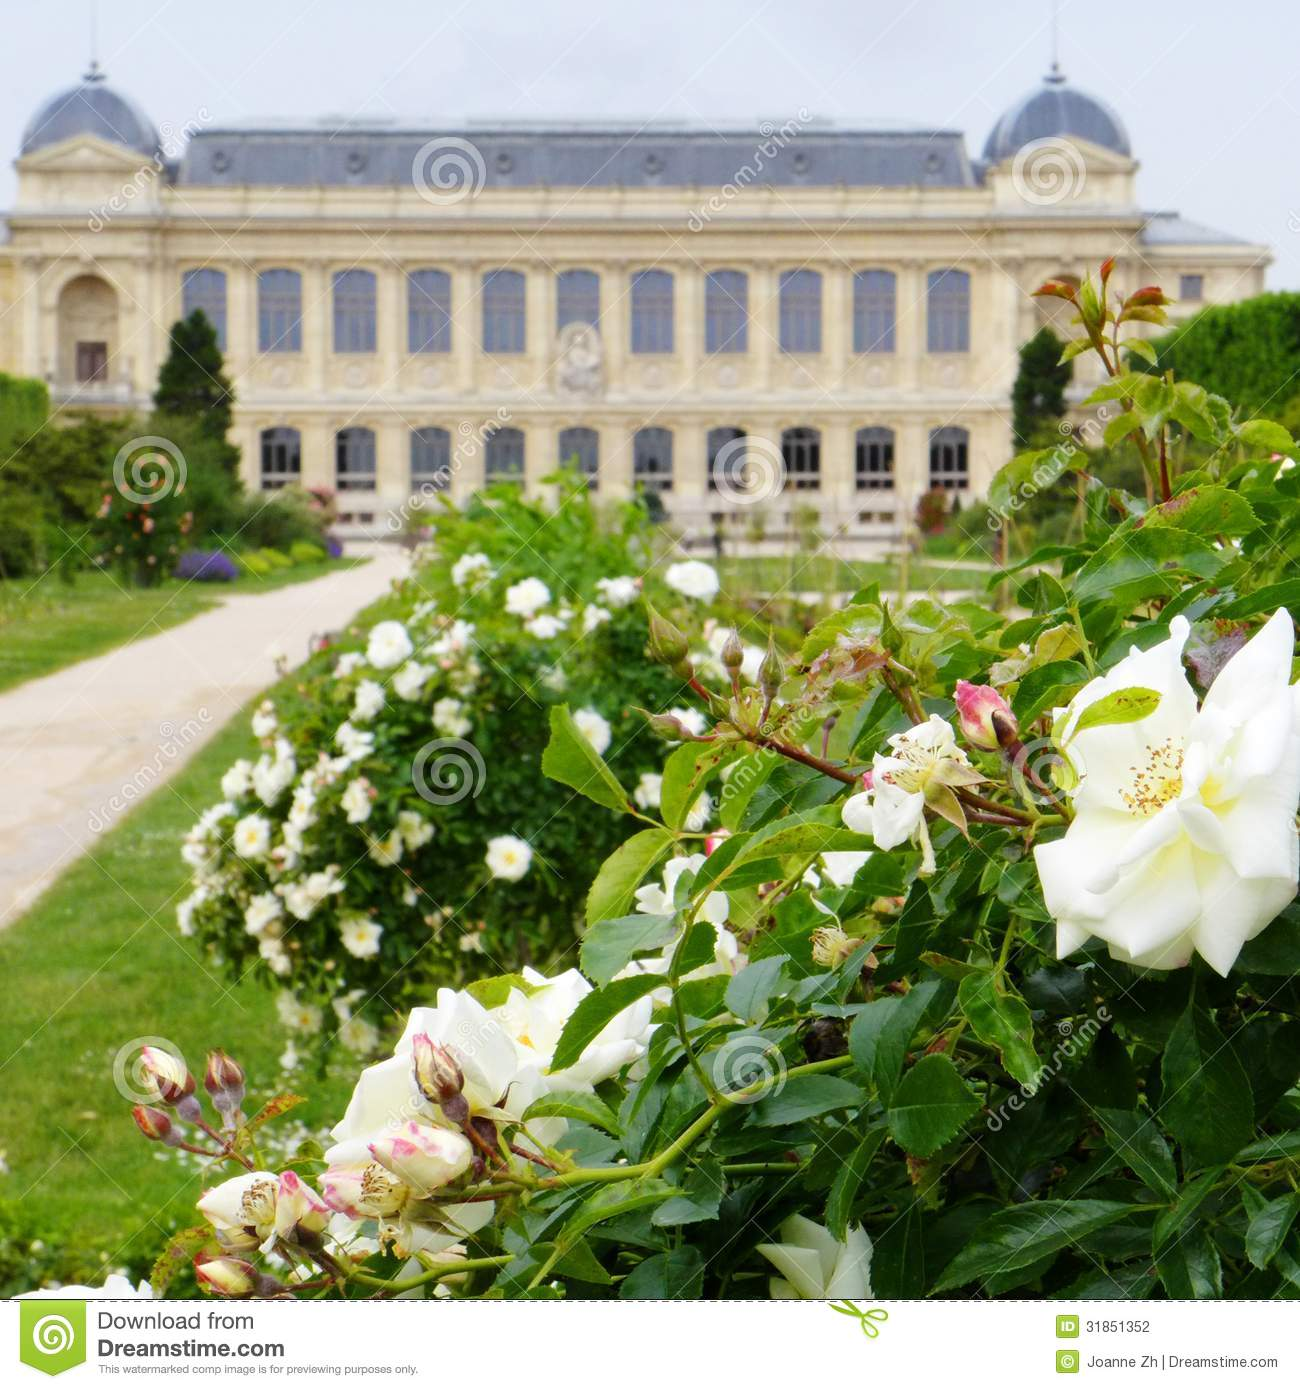 Jardin des plantes paris france stock photo image for Jardin plantes paris